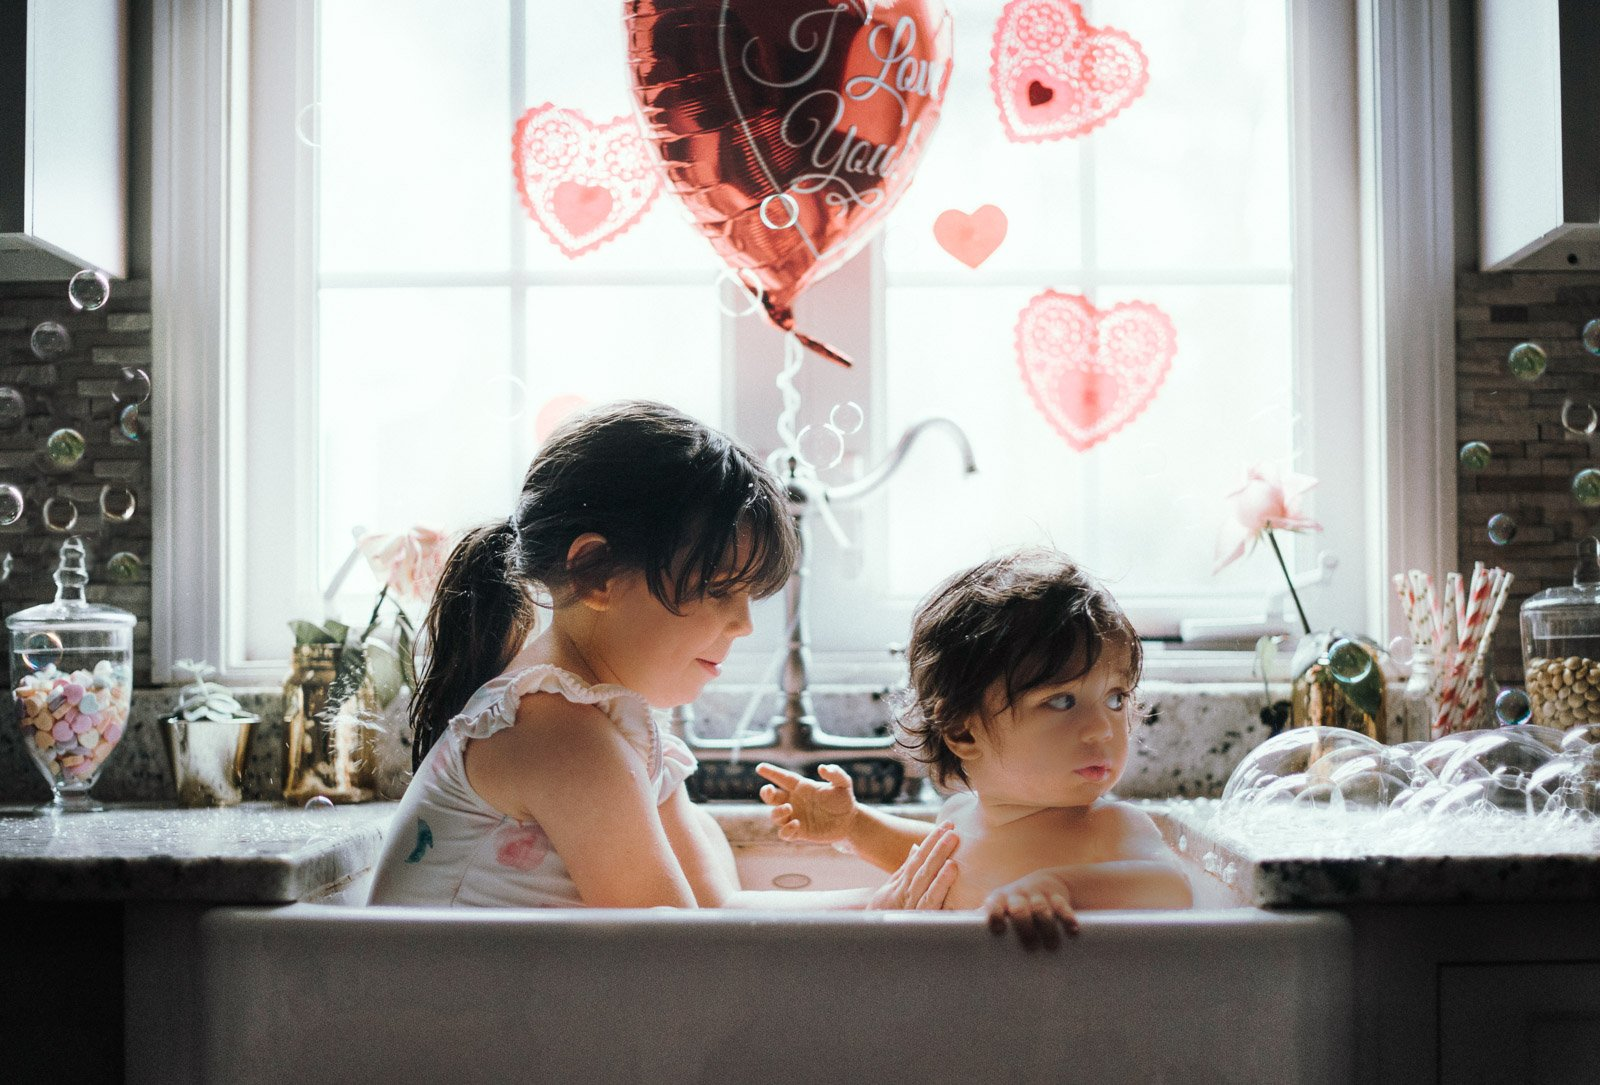 unknown-kids-in-sink-with-hearts_sfaltaous